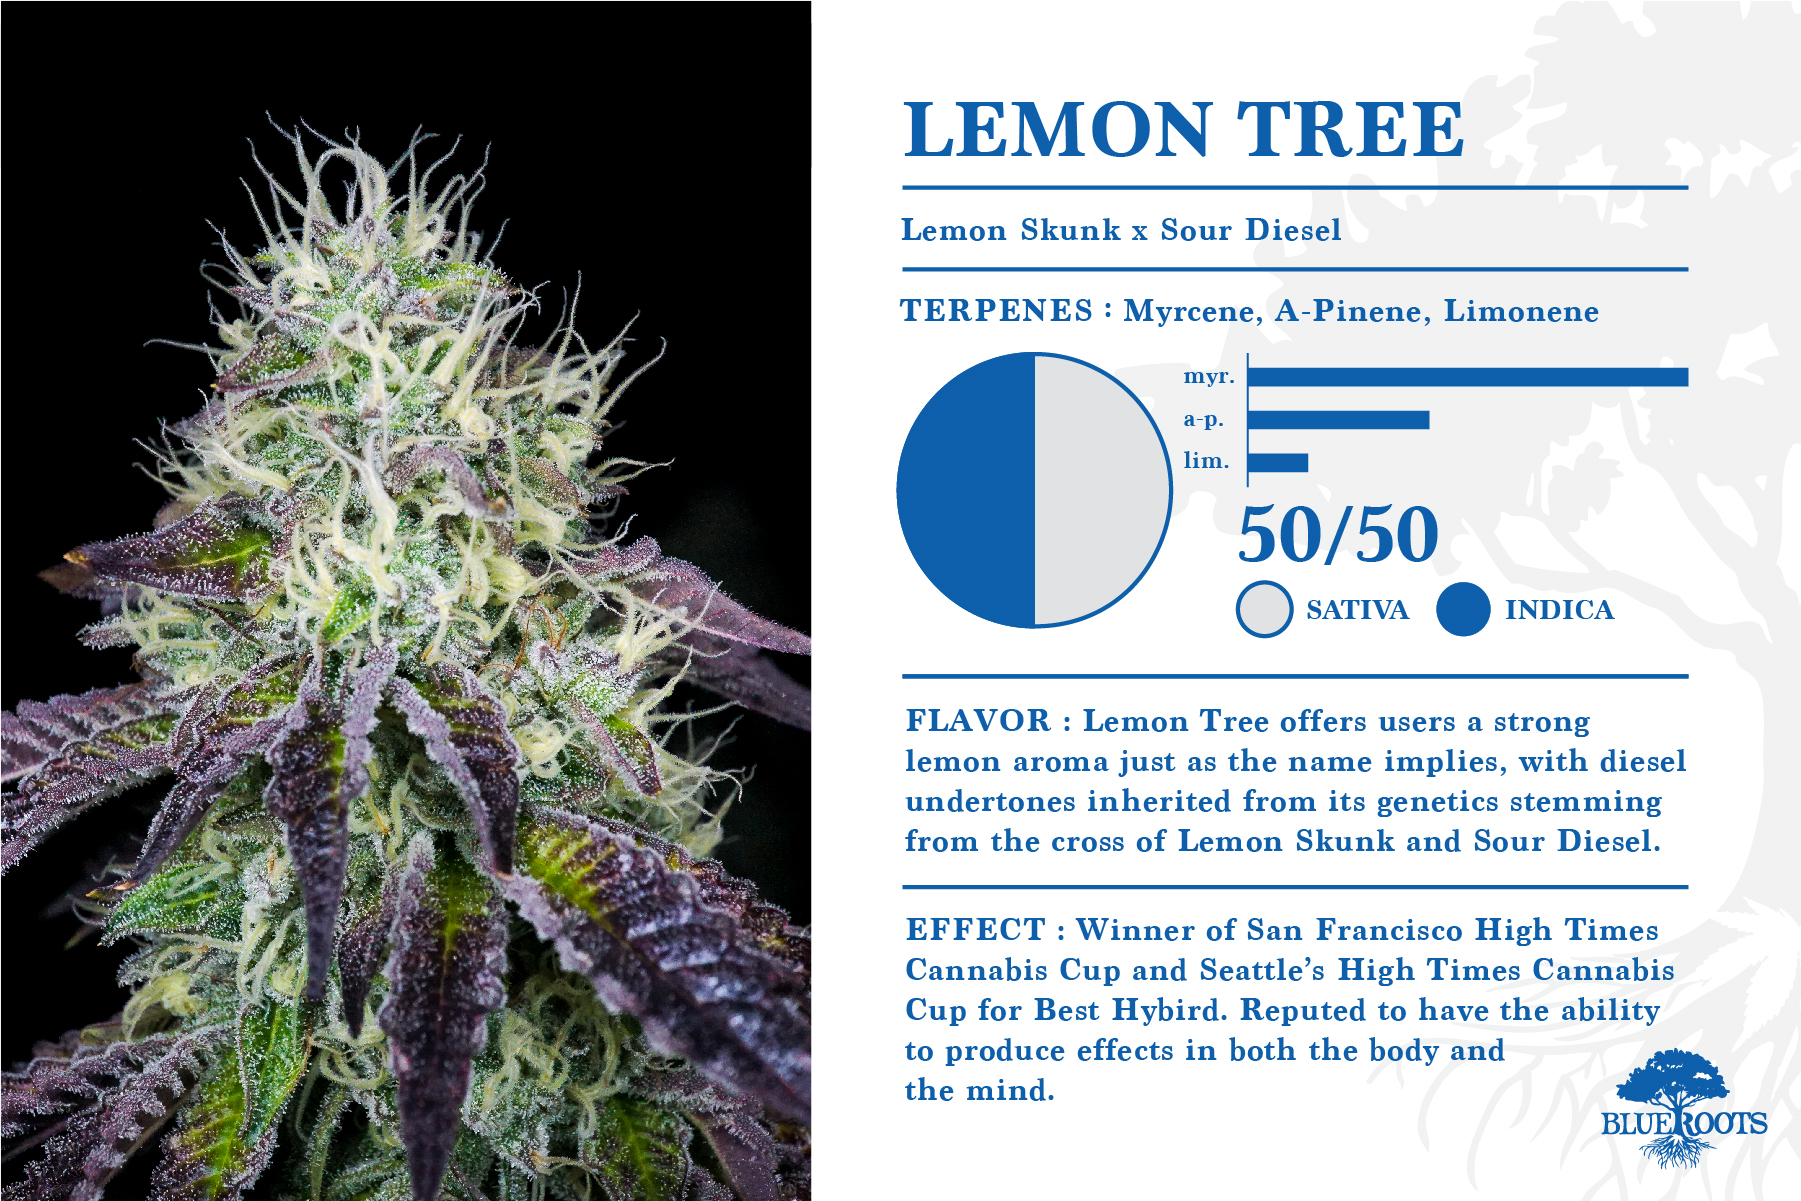 Lemon Tree — Blue Roots Cannabis Co